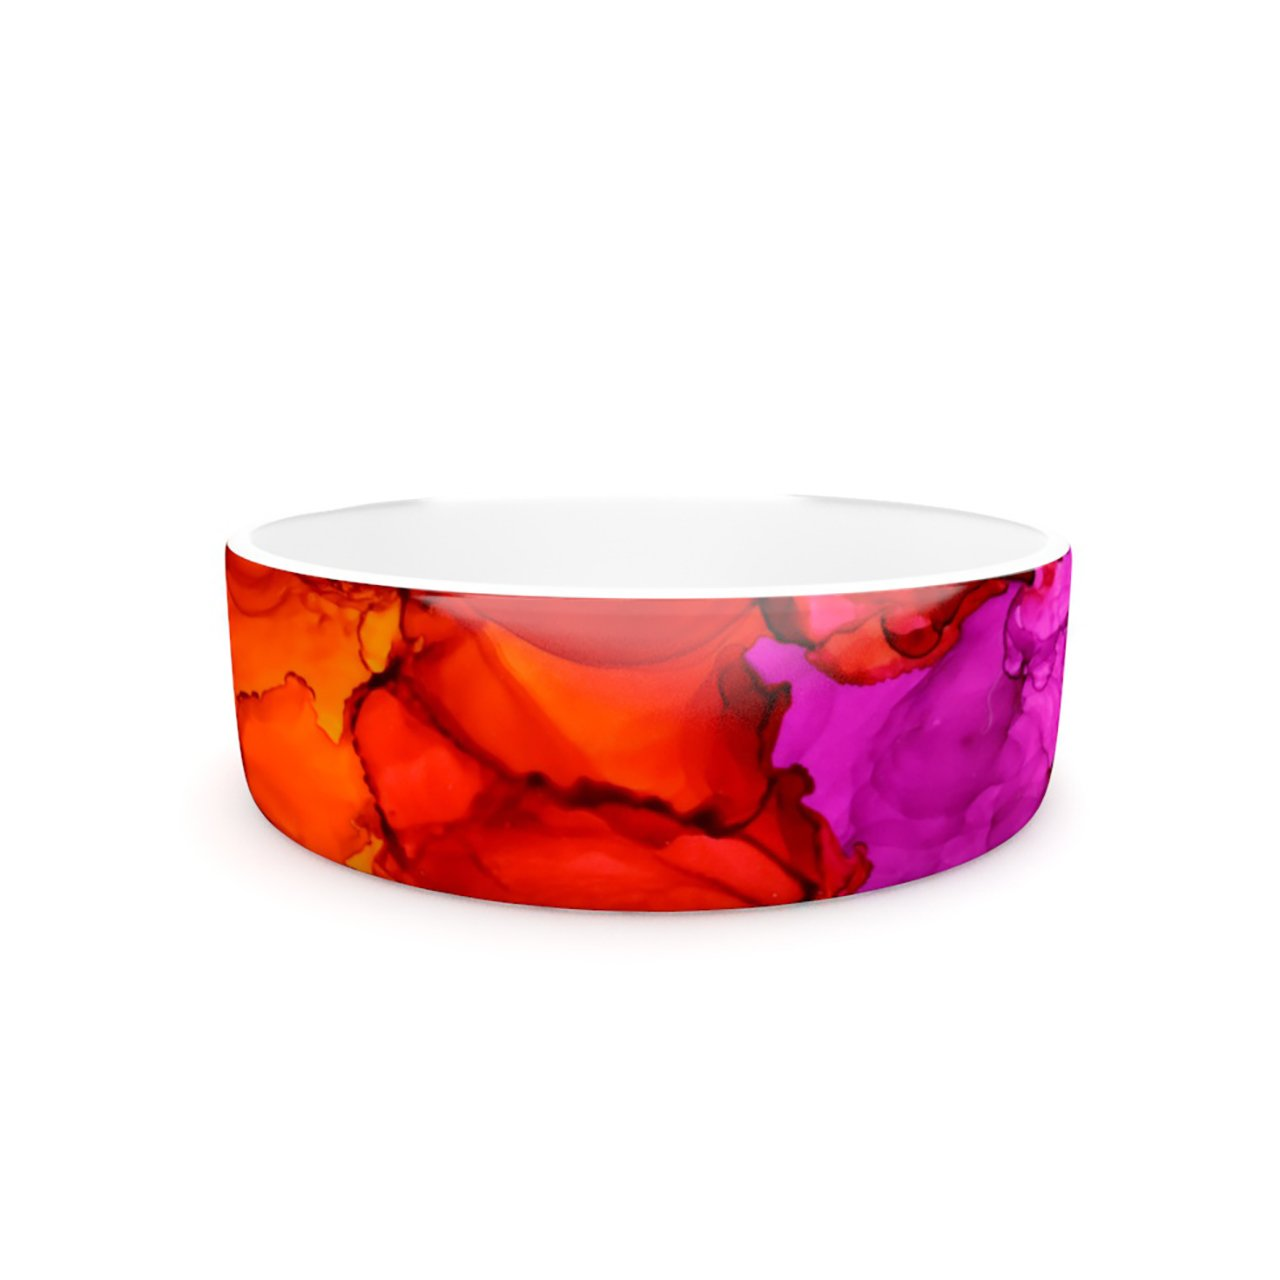 Kess InHouse Claire Day Fierce  Pet Bowl, 7-Inch, Pink orange